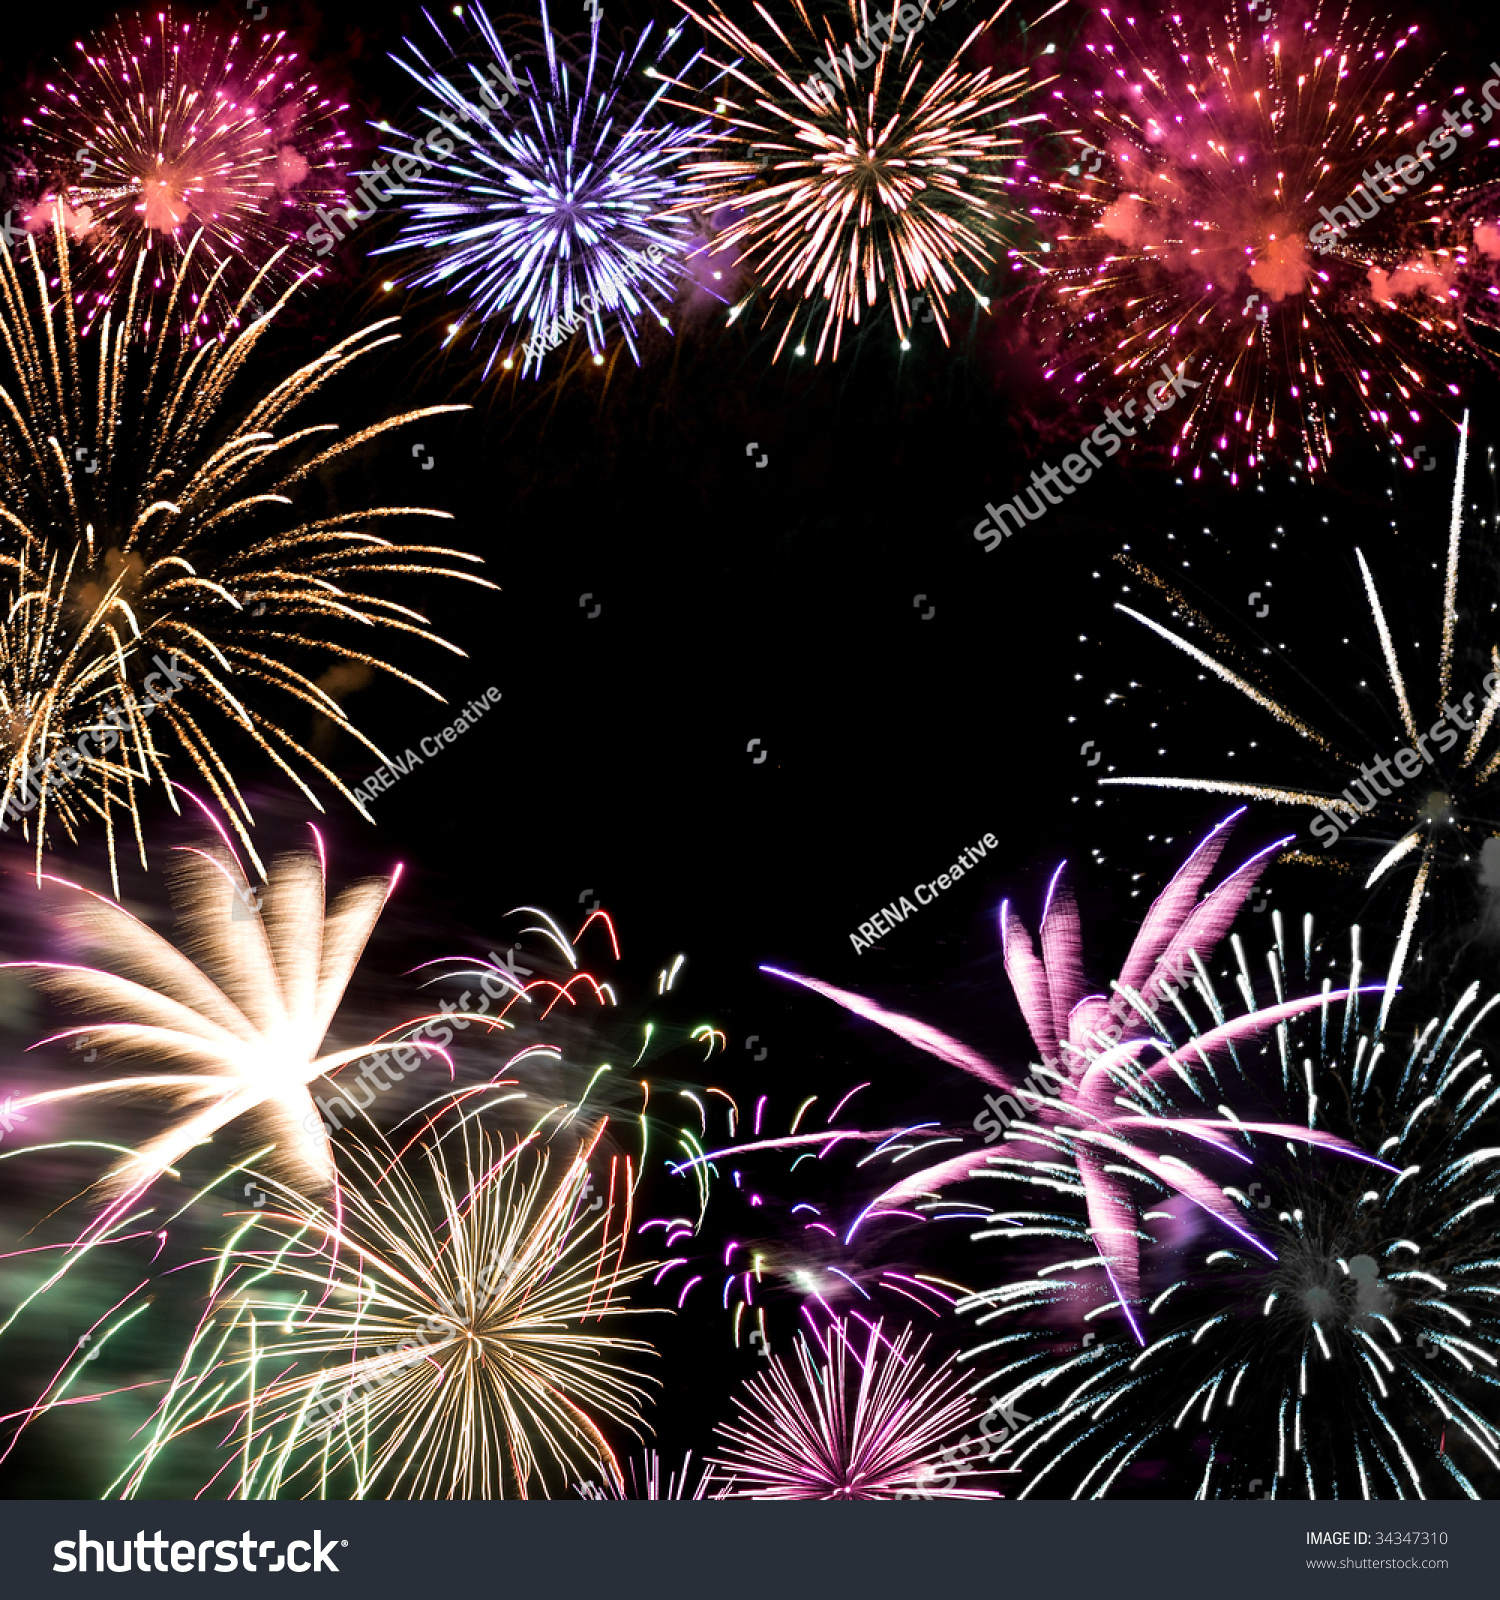 Beautiful Fireworks Exploding Over A Dark Night Sky With Copy Space In The Center. Stock Photo 34347310 : Shutterstock